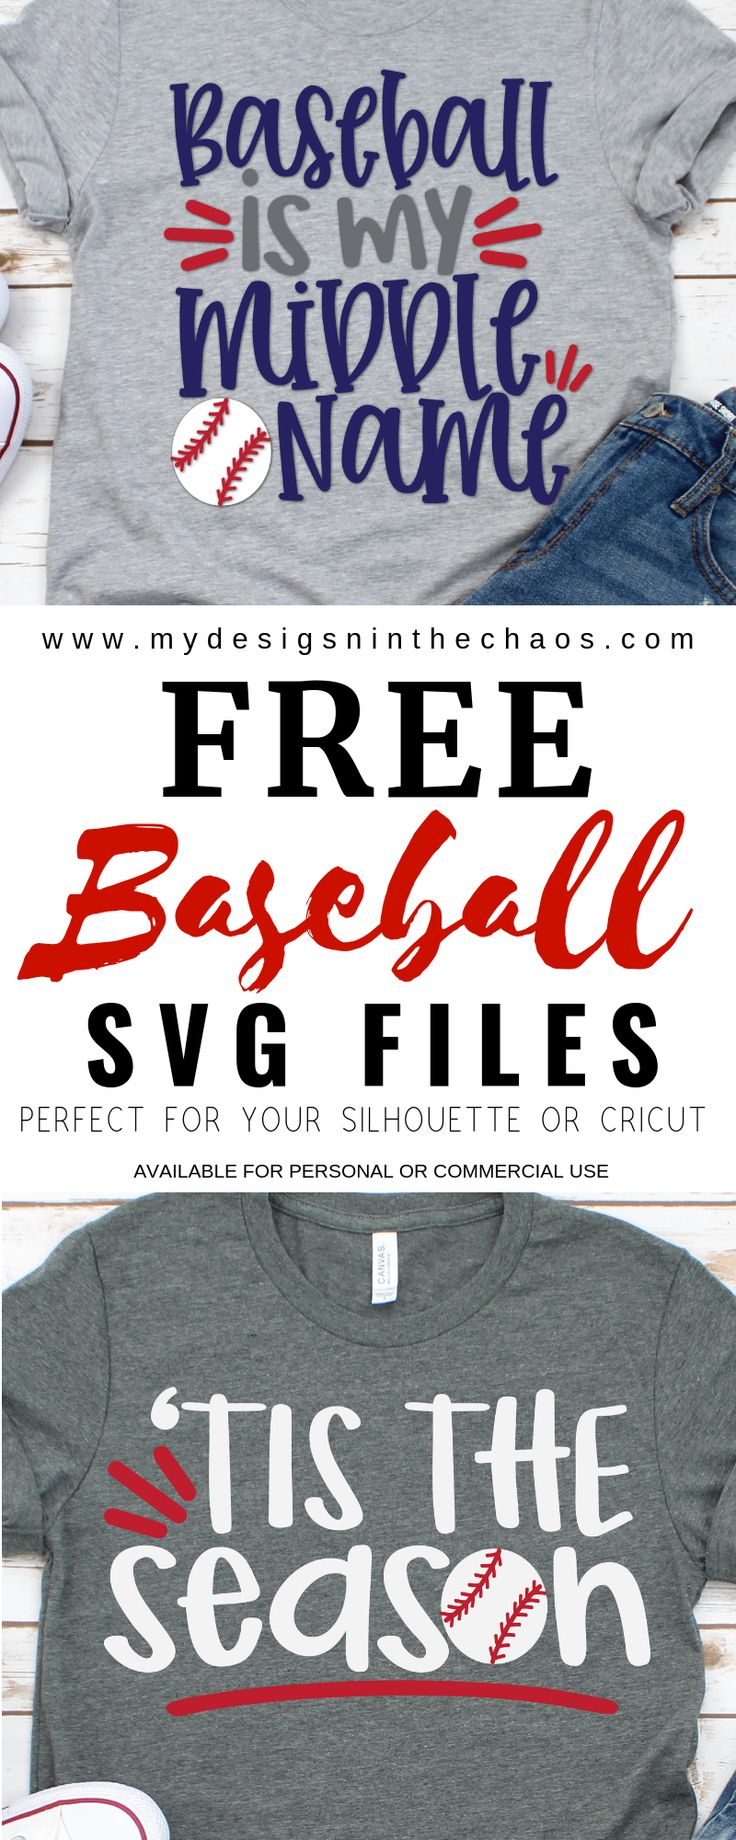 Download Free Baseball SVG Files for Silhouette or Cricut | Cricut ...